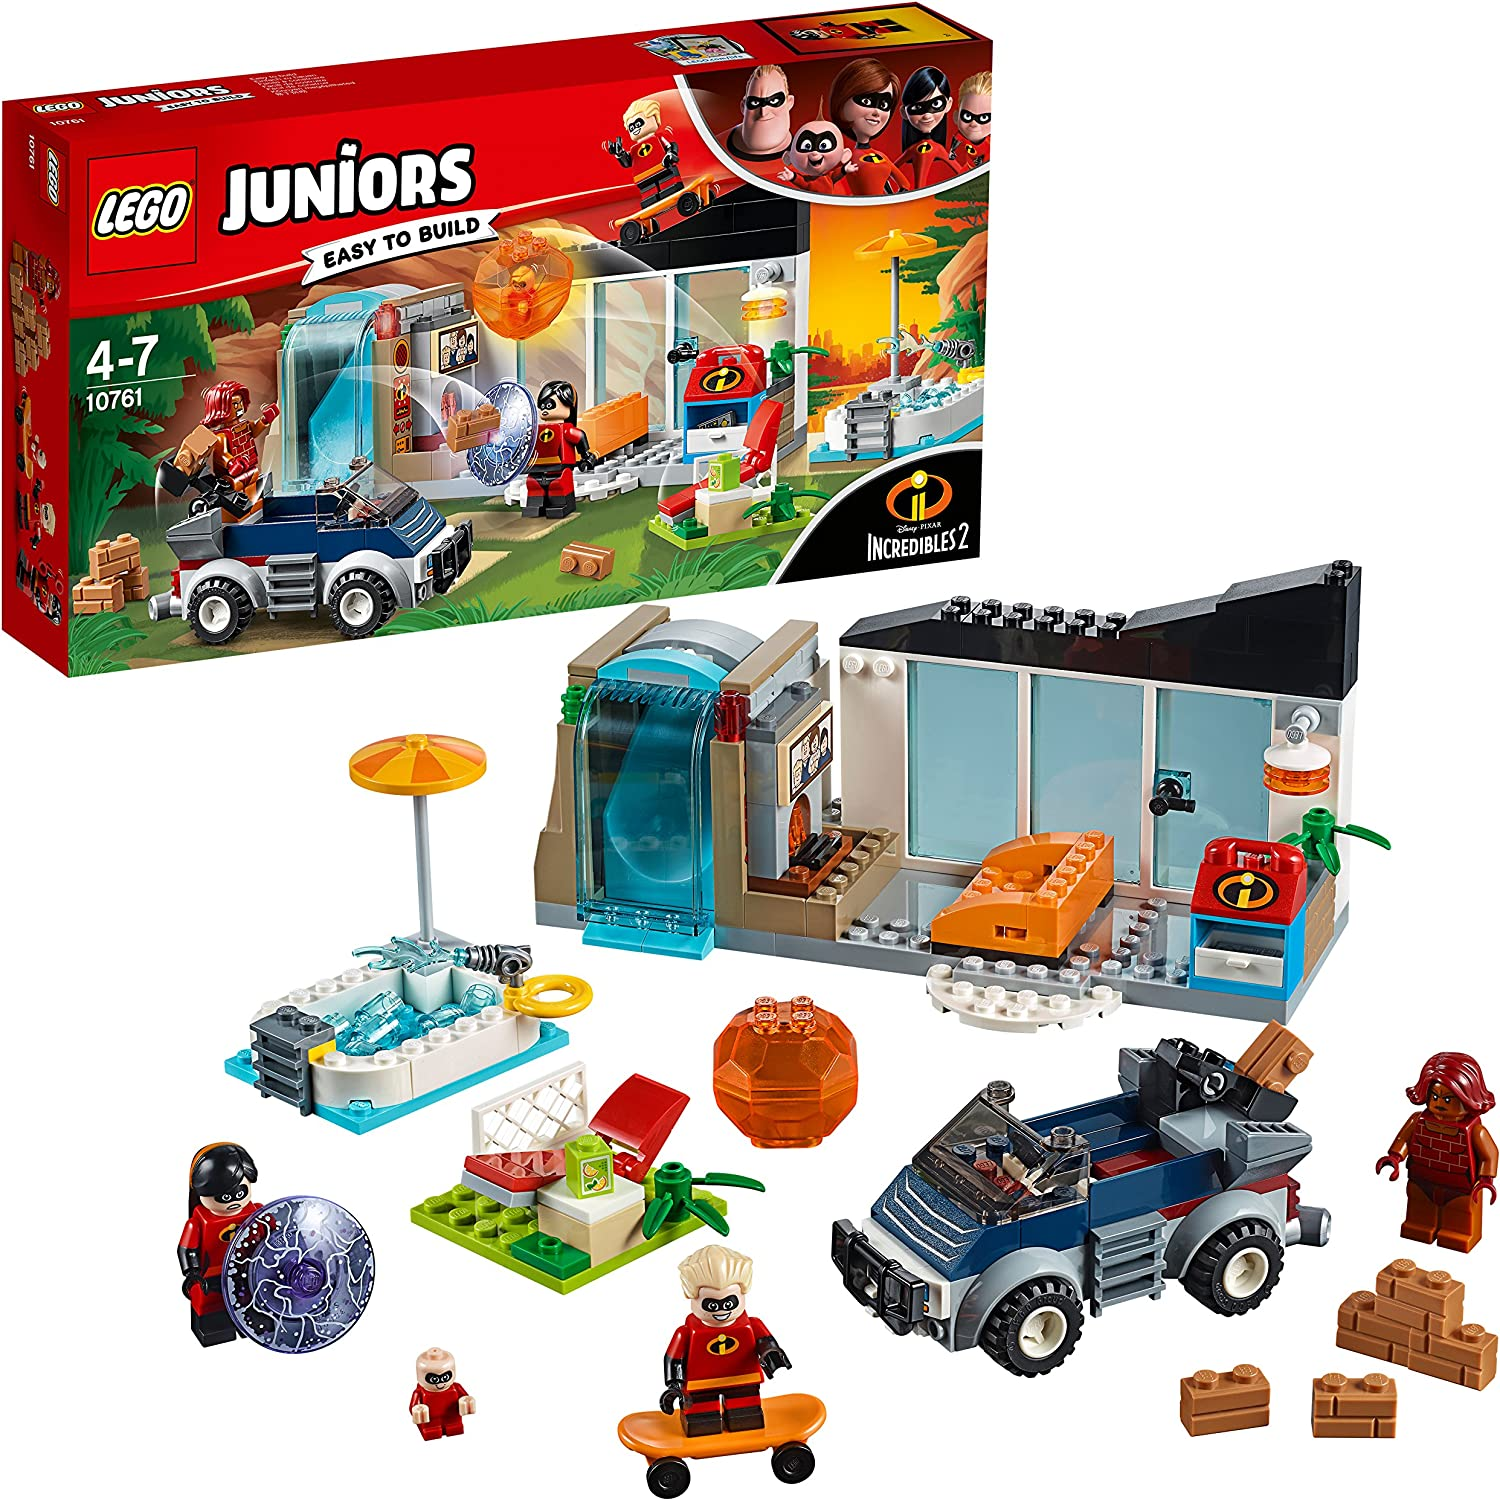 Incredibles 2 LEGO Sets Now Available